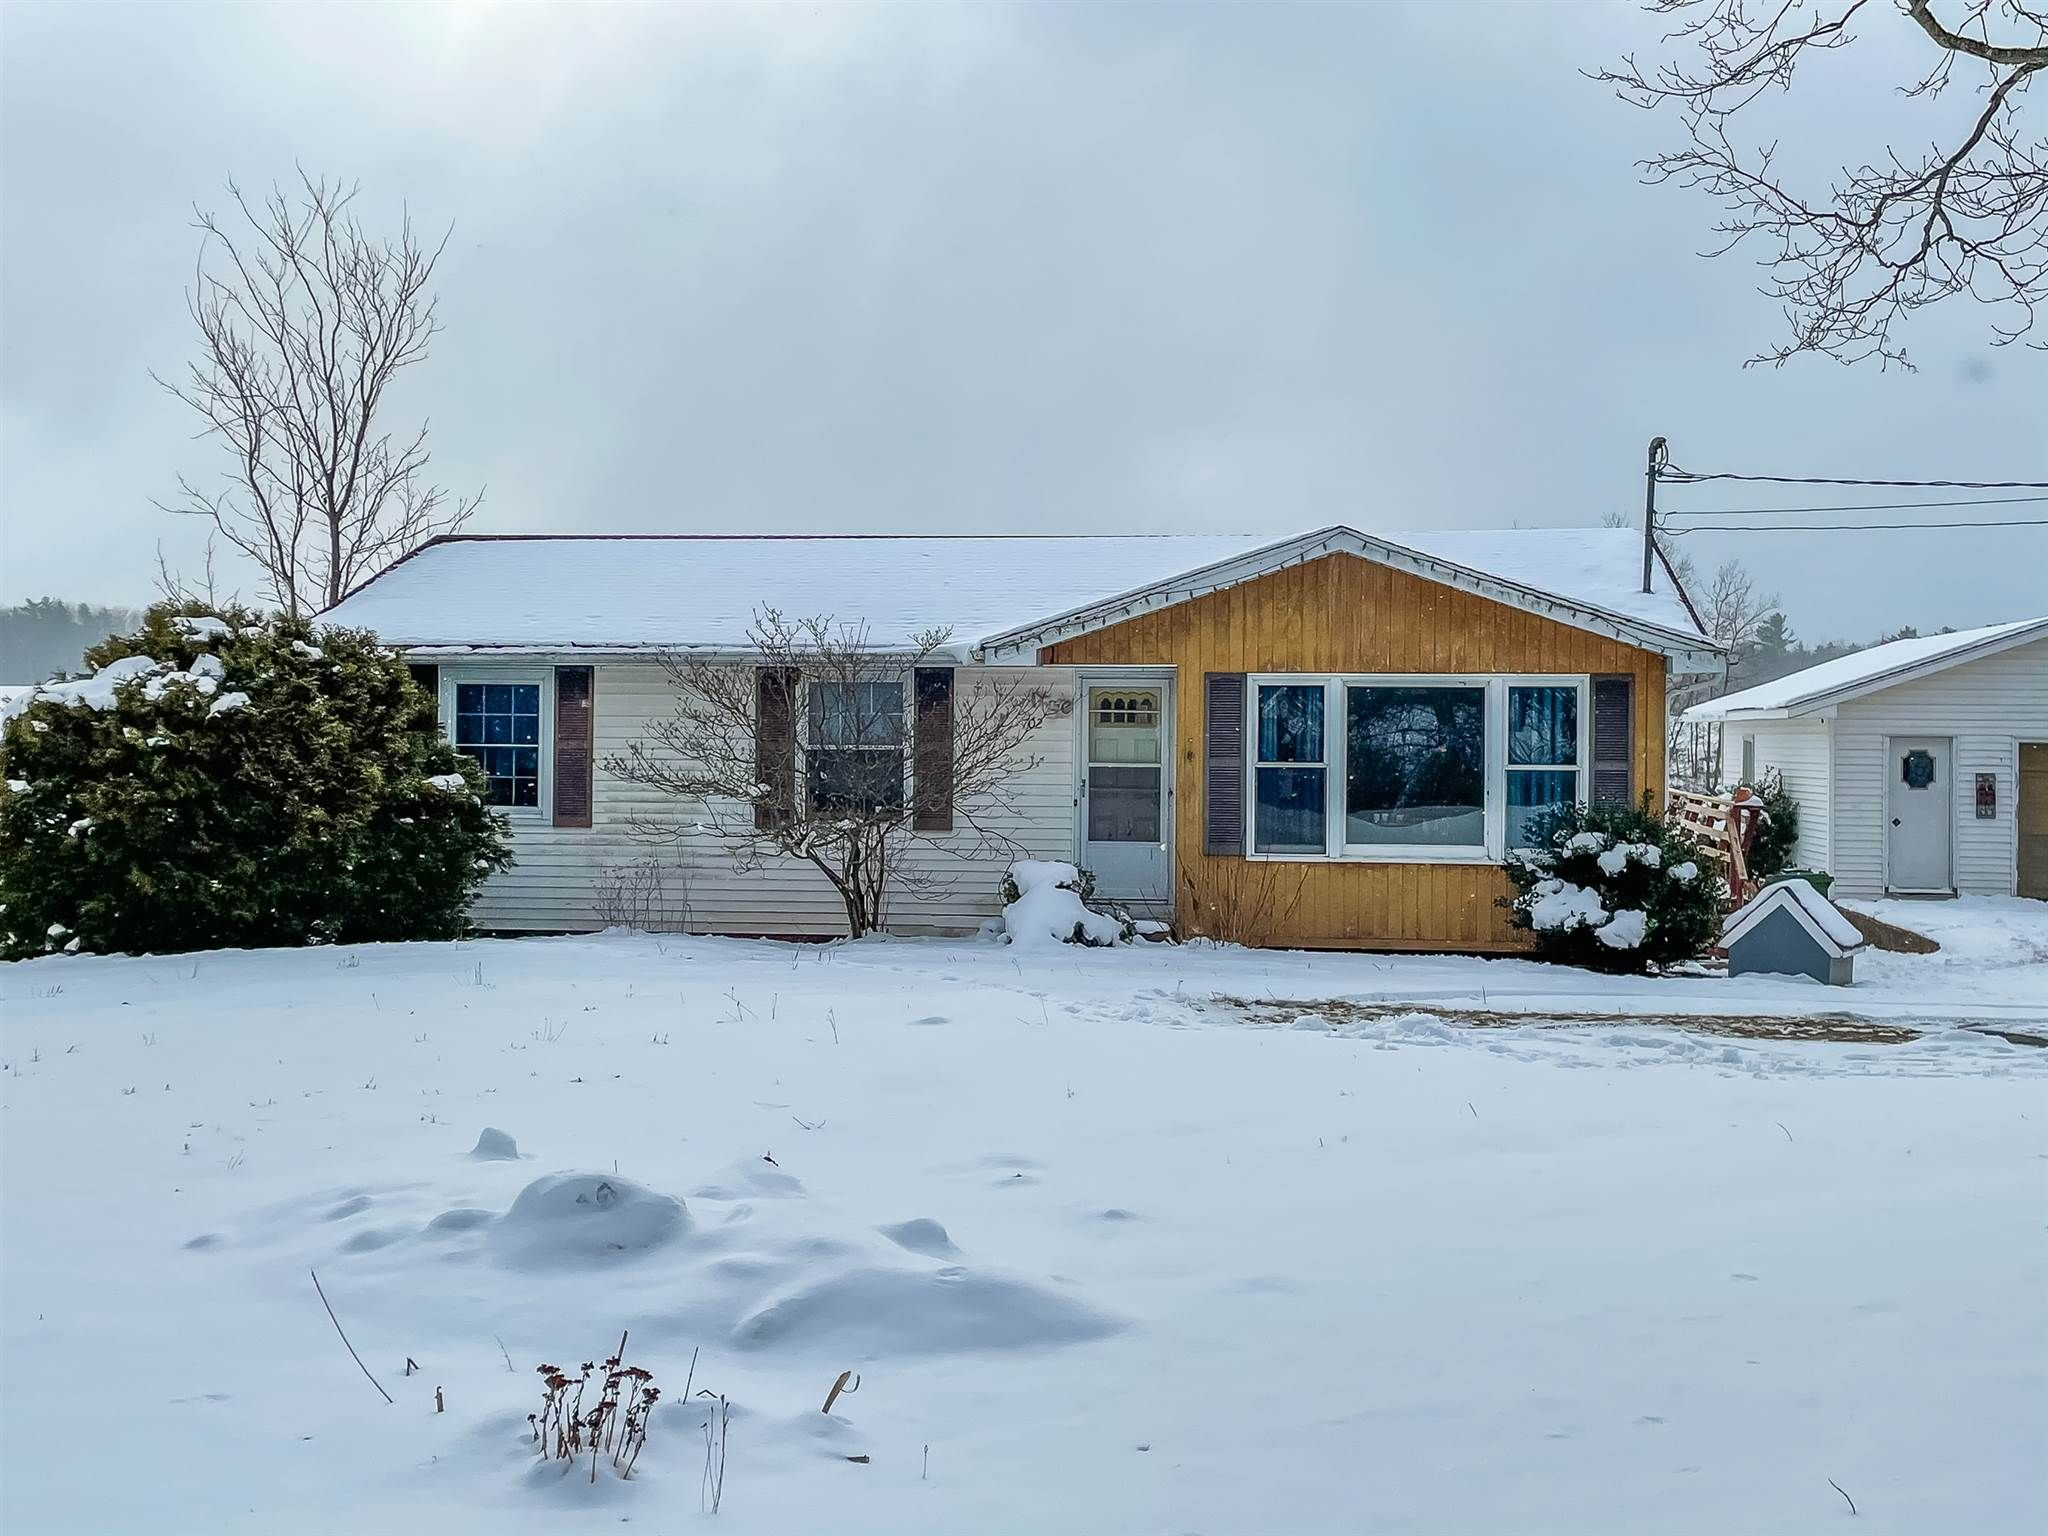 Main Photo: 702 Lakewood Road in Keddys Corner: 404-Kings County Residential for sale (Annapolis Valley)  : MLS®# 202101334